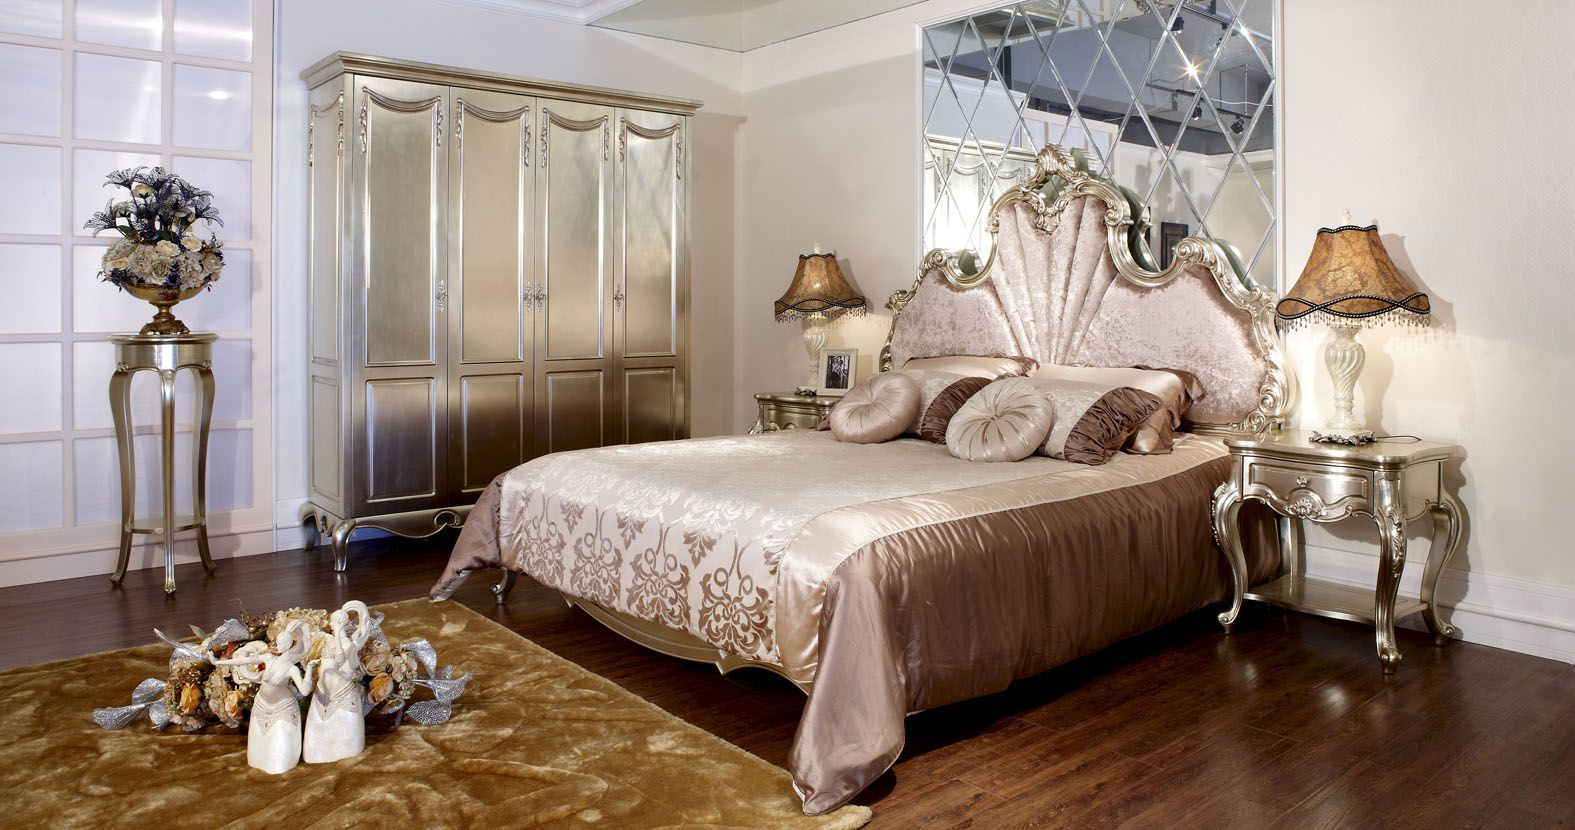 Best ideas about Bedroom In French . Save or Pin french provincial furniture bedroom Now.